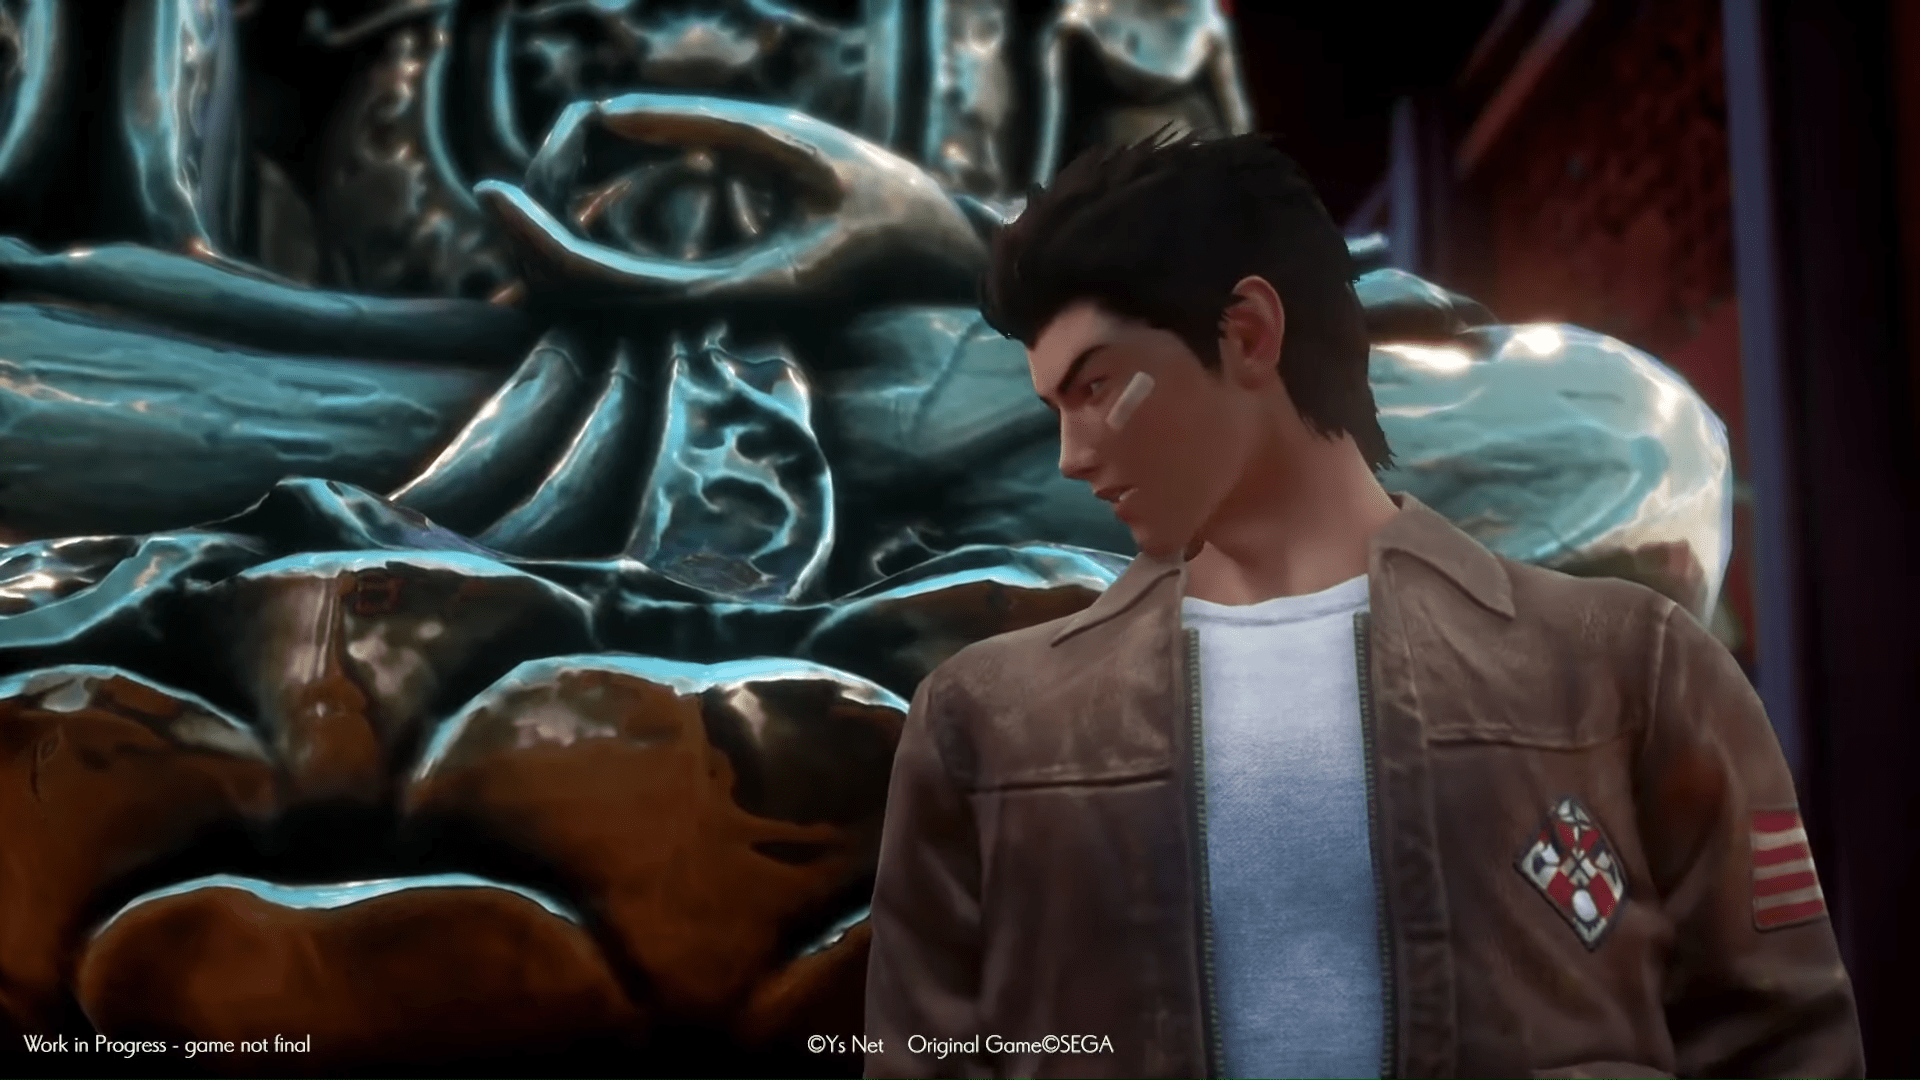 Shenmue III Developers (Finally) Offer Refunds To Kickstarter Backers After Epic Store Debacle